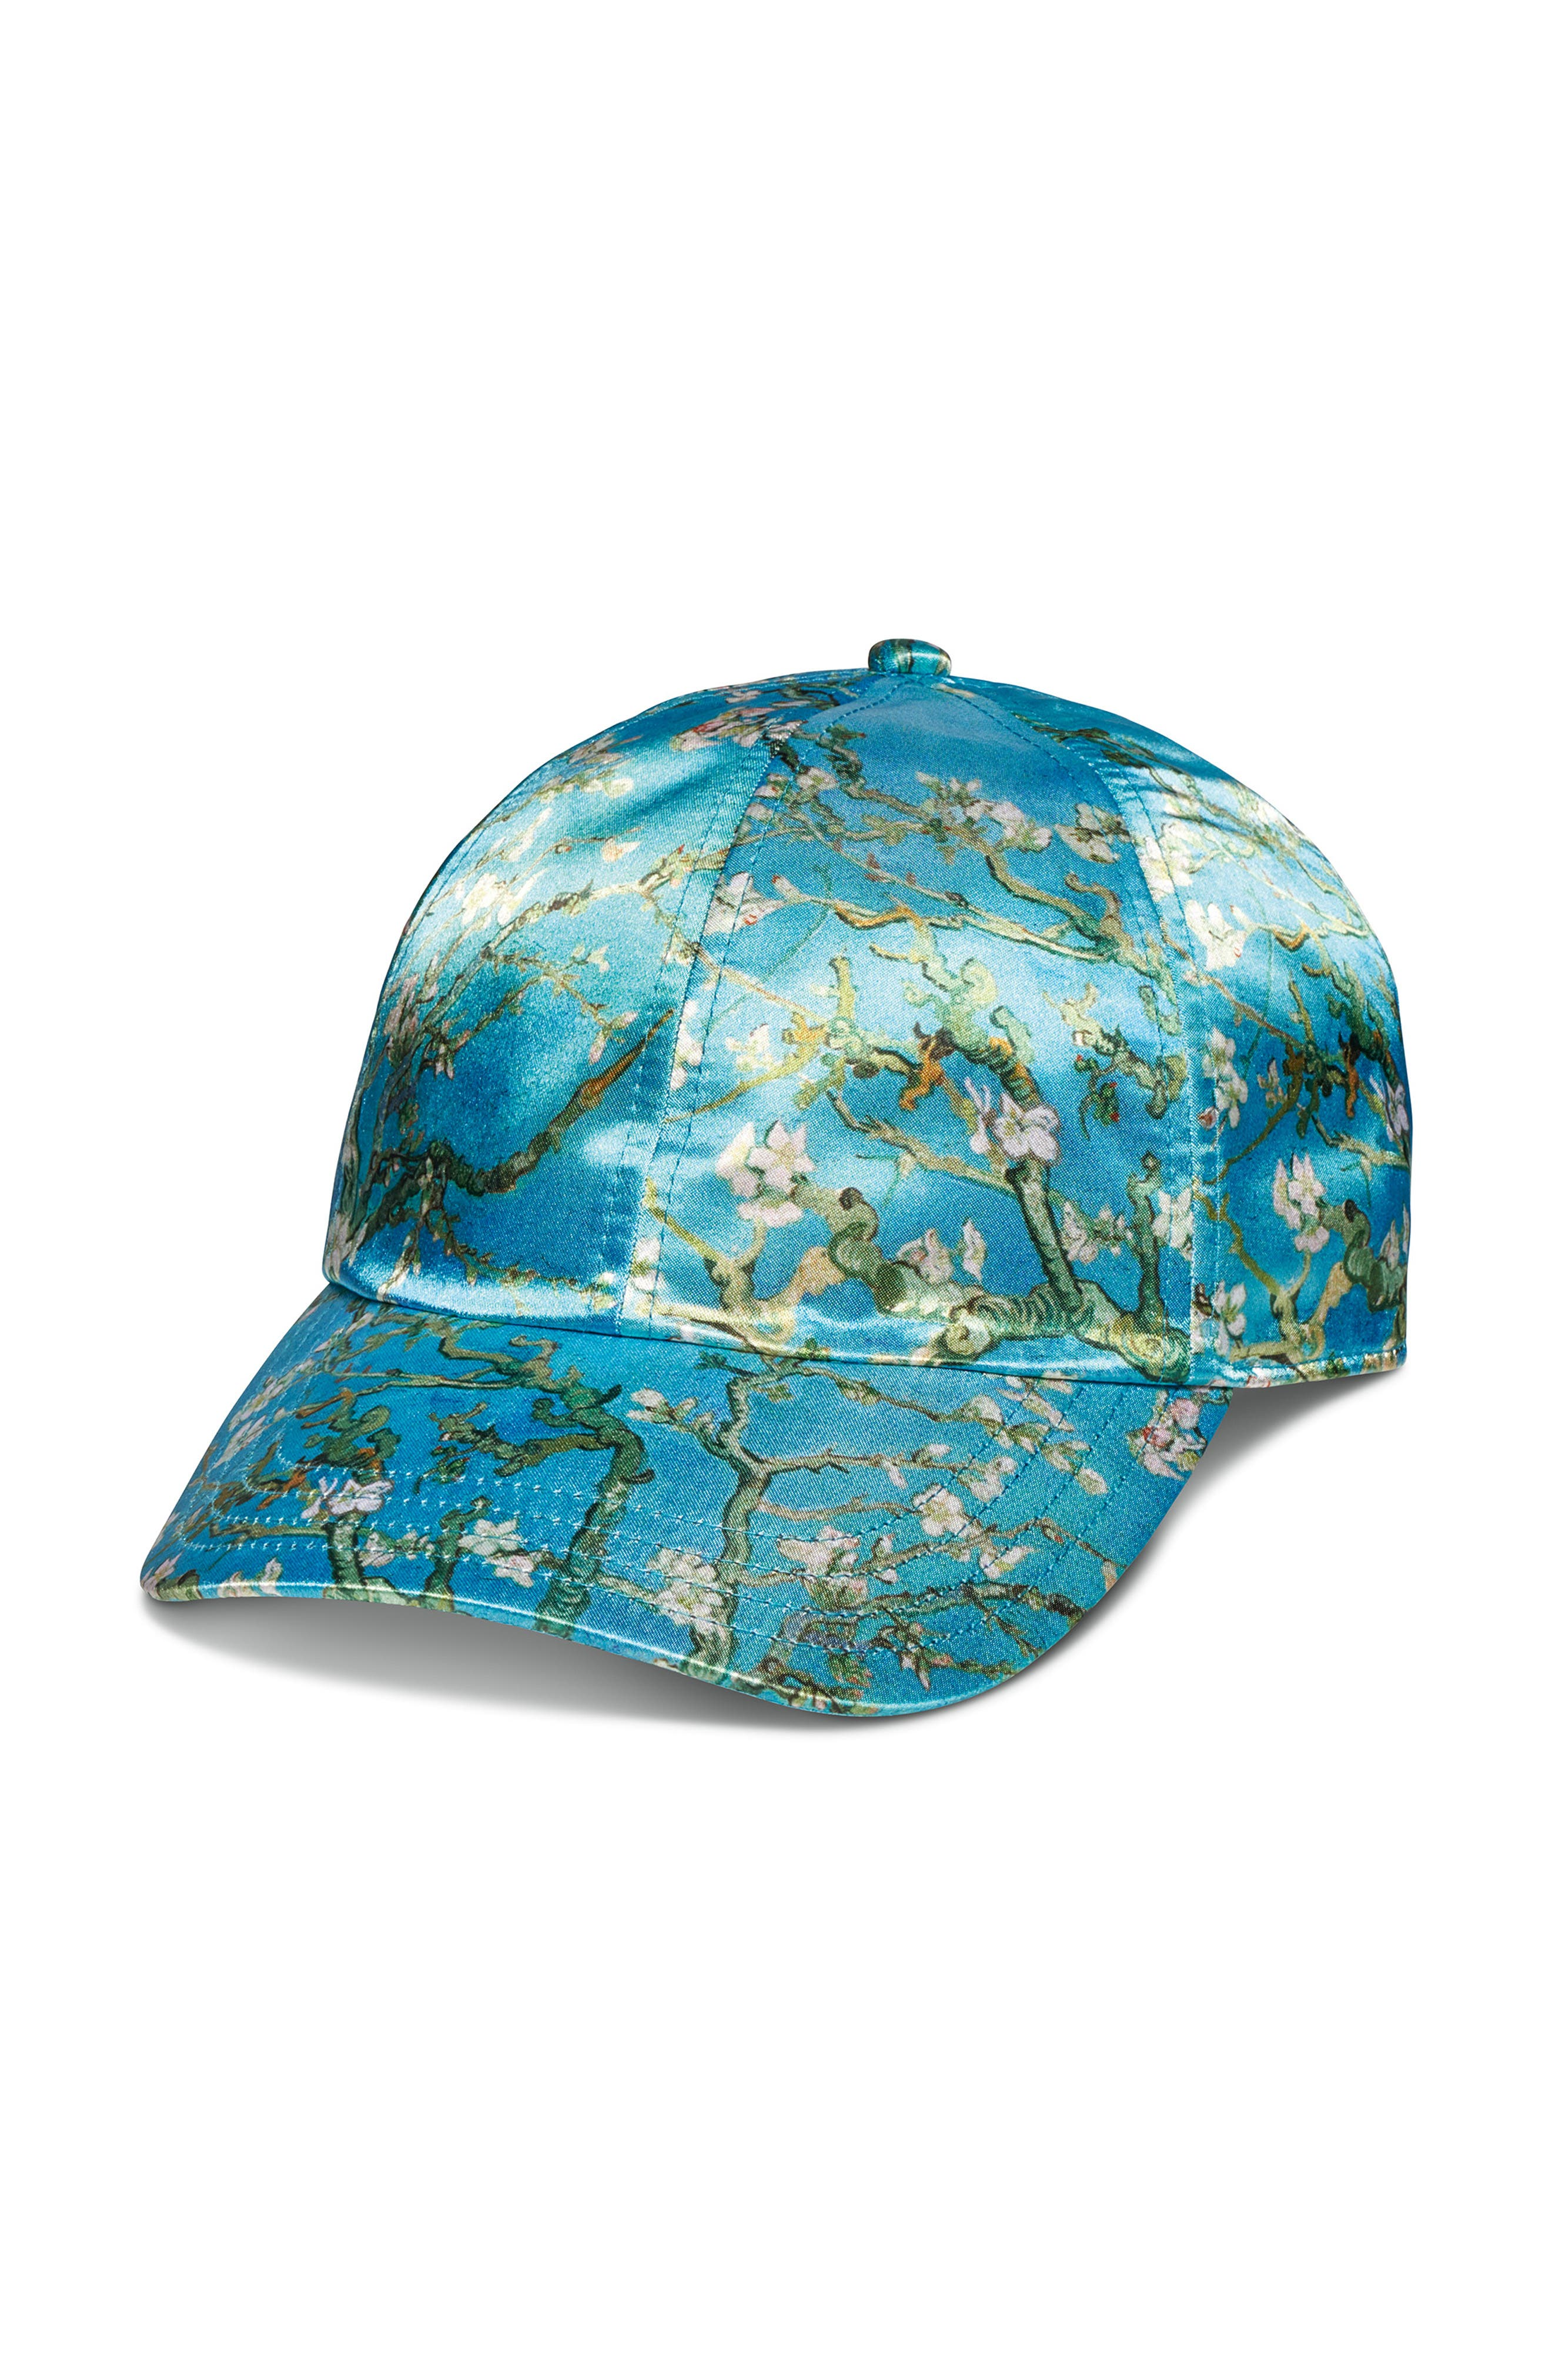 x Van Gogh Museum Almond Blossom Satin Baseball Cap,                         Main,                         color, 440